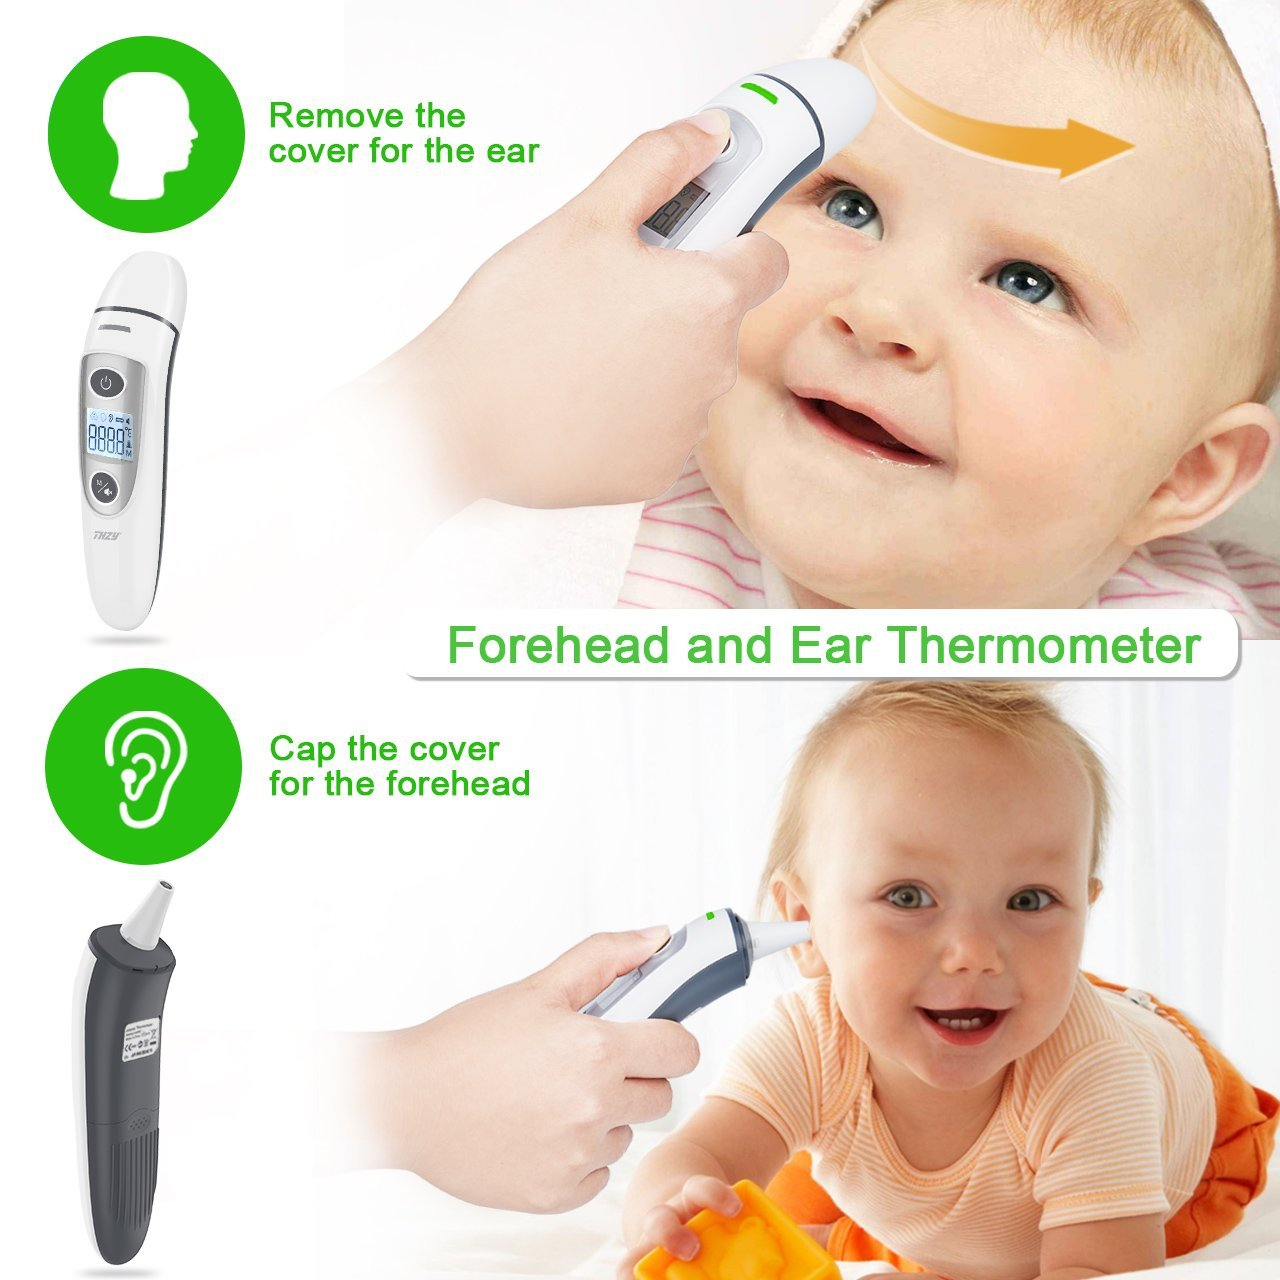 Forehead and Ear Thermometer, THZY Upgraded Digital Infrared Thermometer with Fever Indicator, Dual Mode Body Thermometer Suitable for Baby, Infants, Toddlers and Adult CE&FDA Approved by THZY (Image #2)